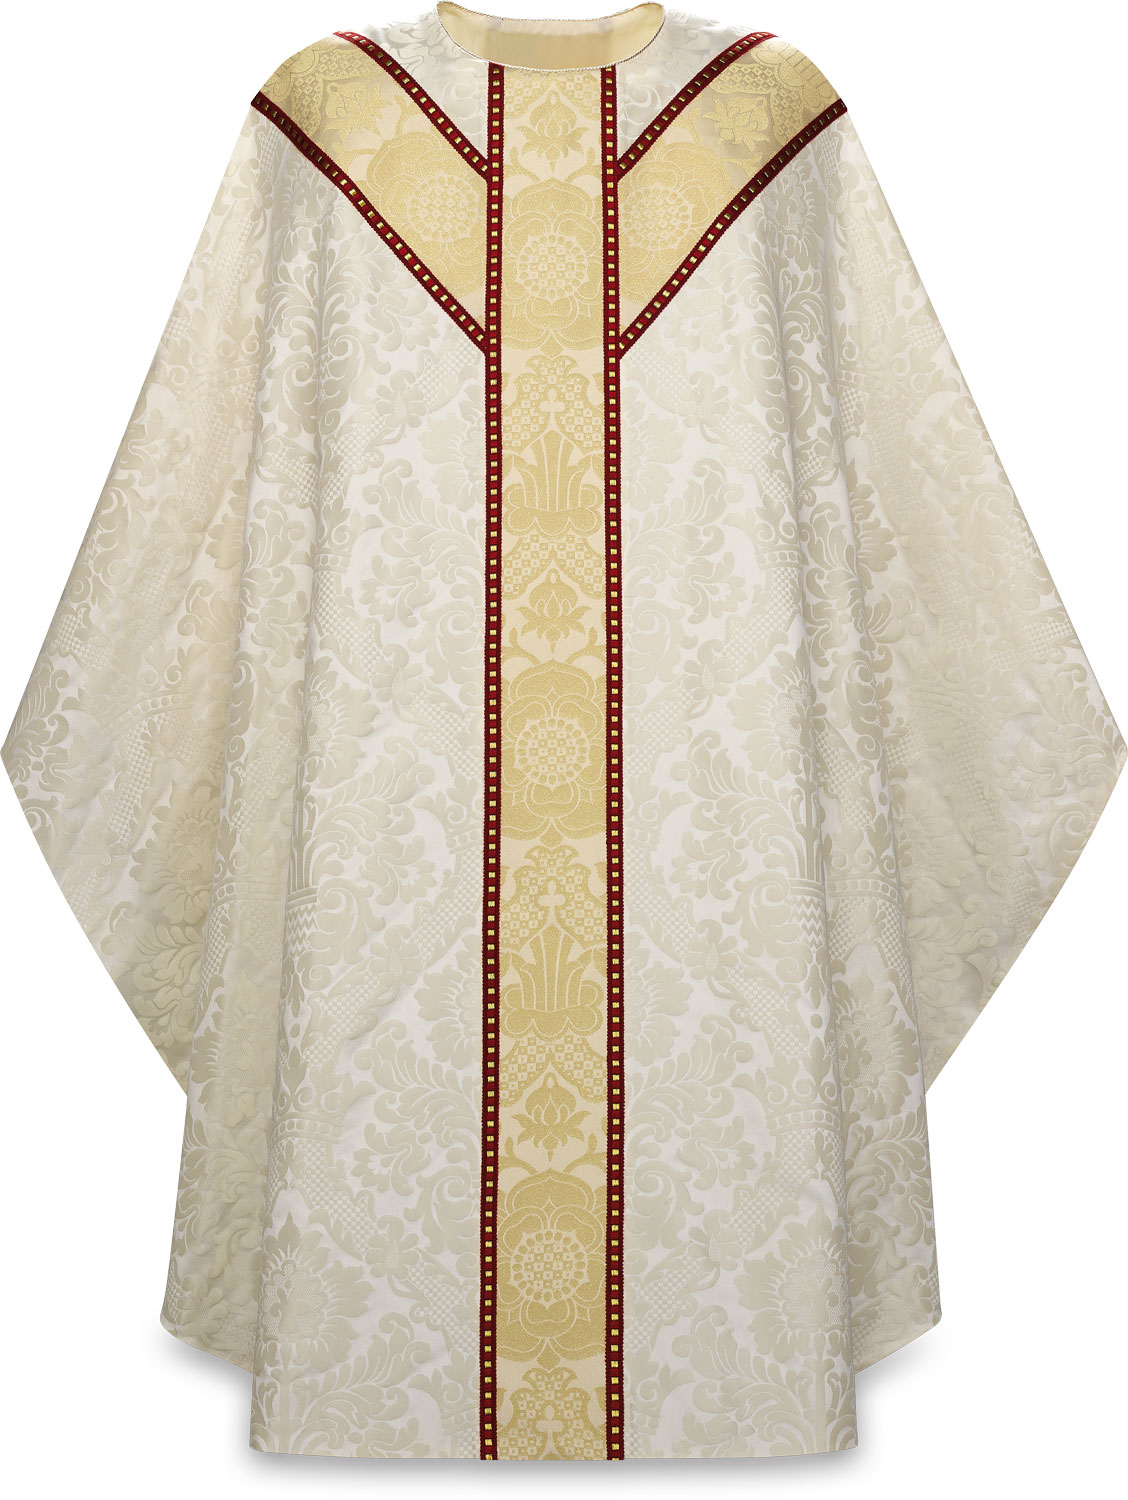 Chasuble | White | 5238 | Slabbinck